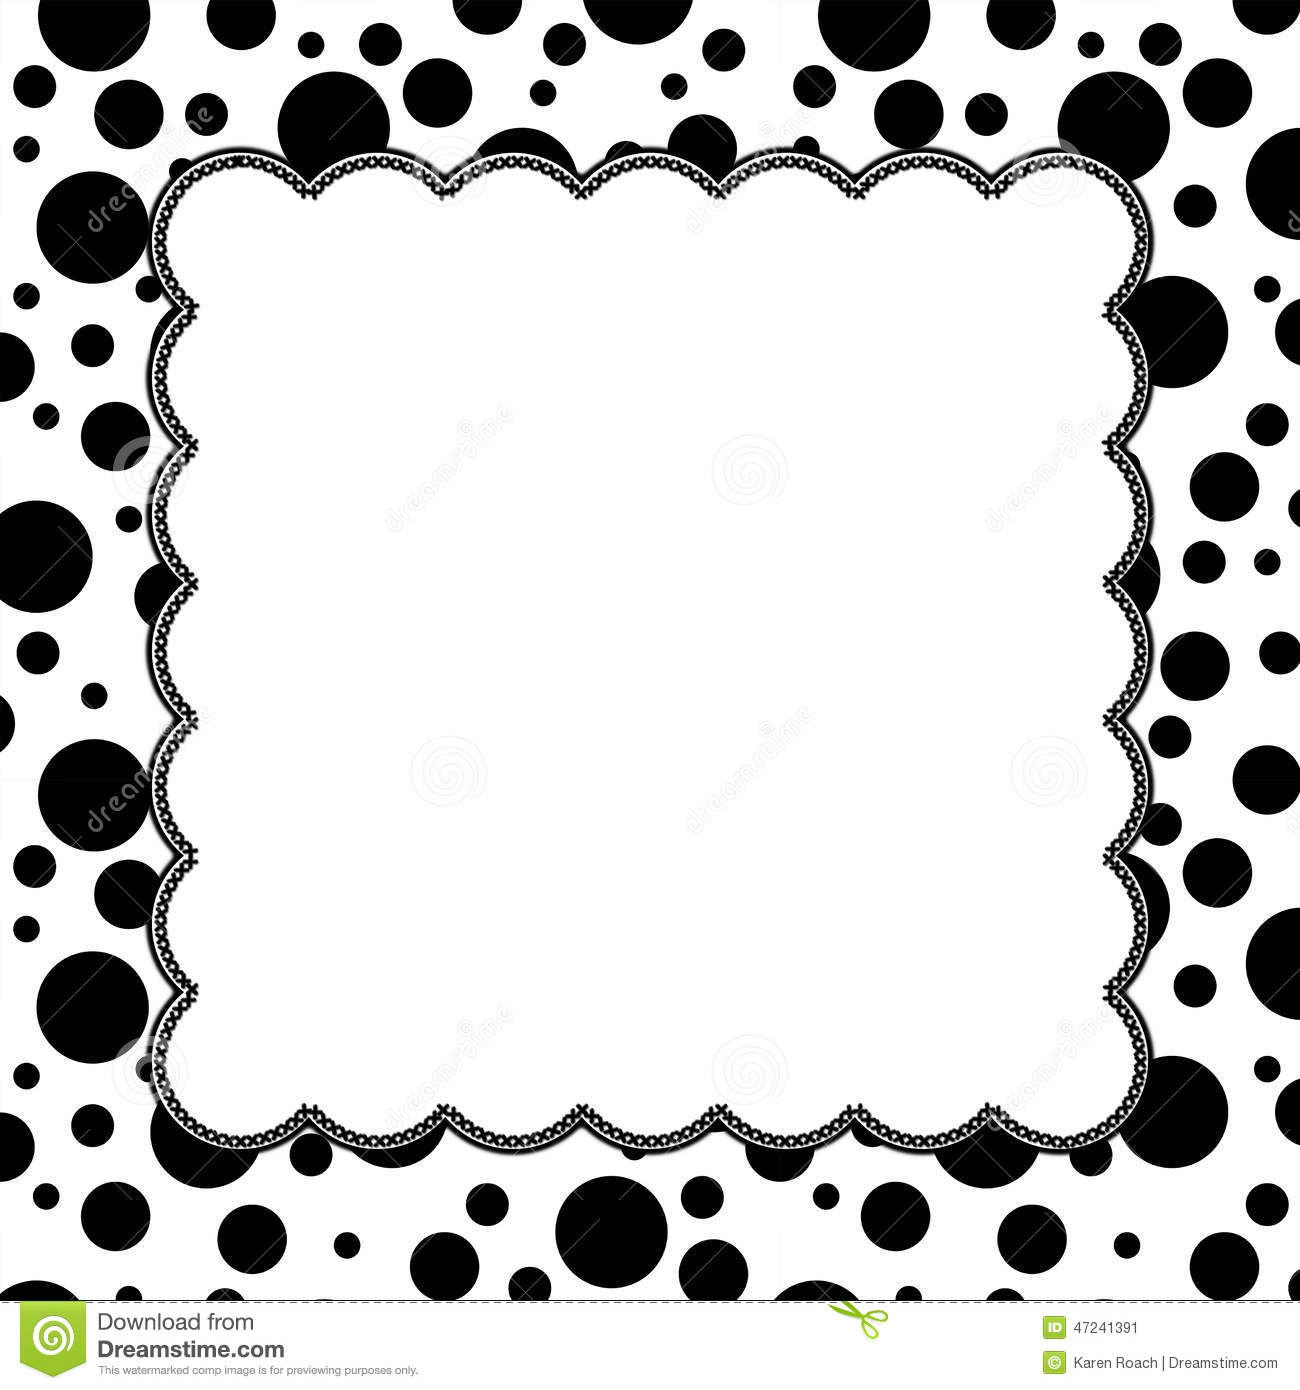 Black and white polka dot background with embroidery with center for